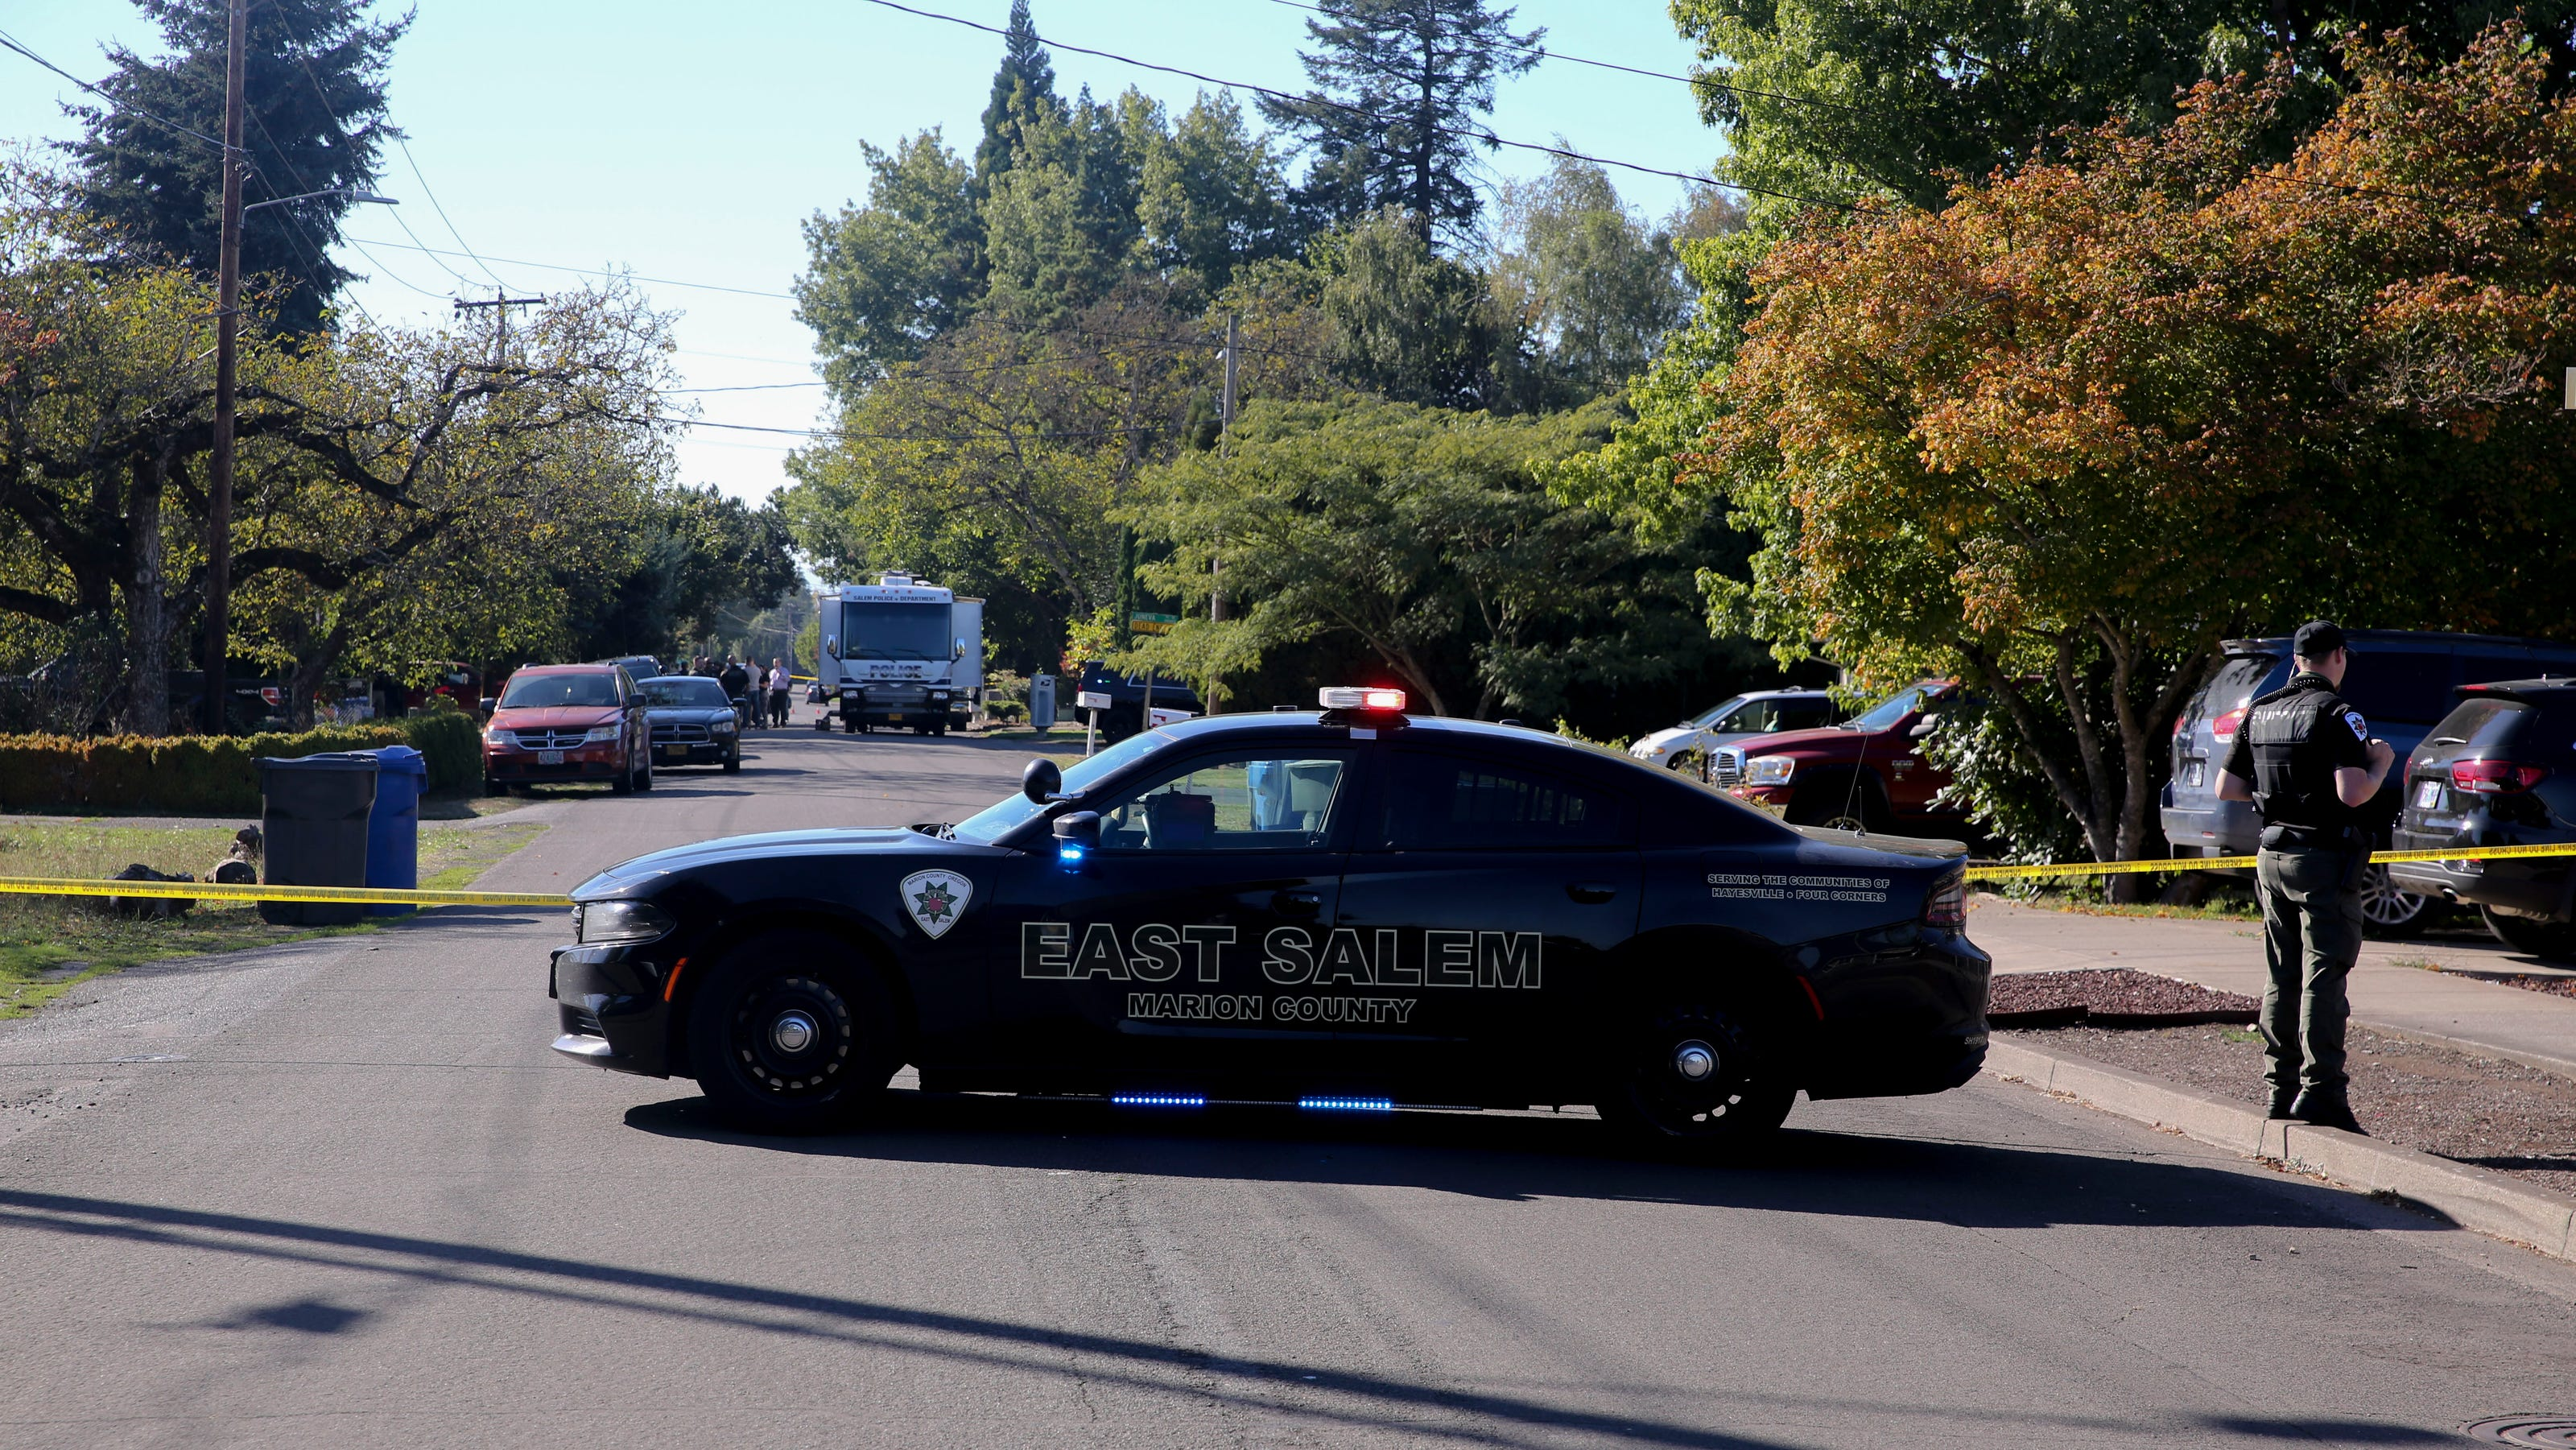 Three People Dead After Hostage Situation in Salem, Oregon